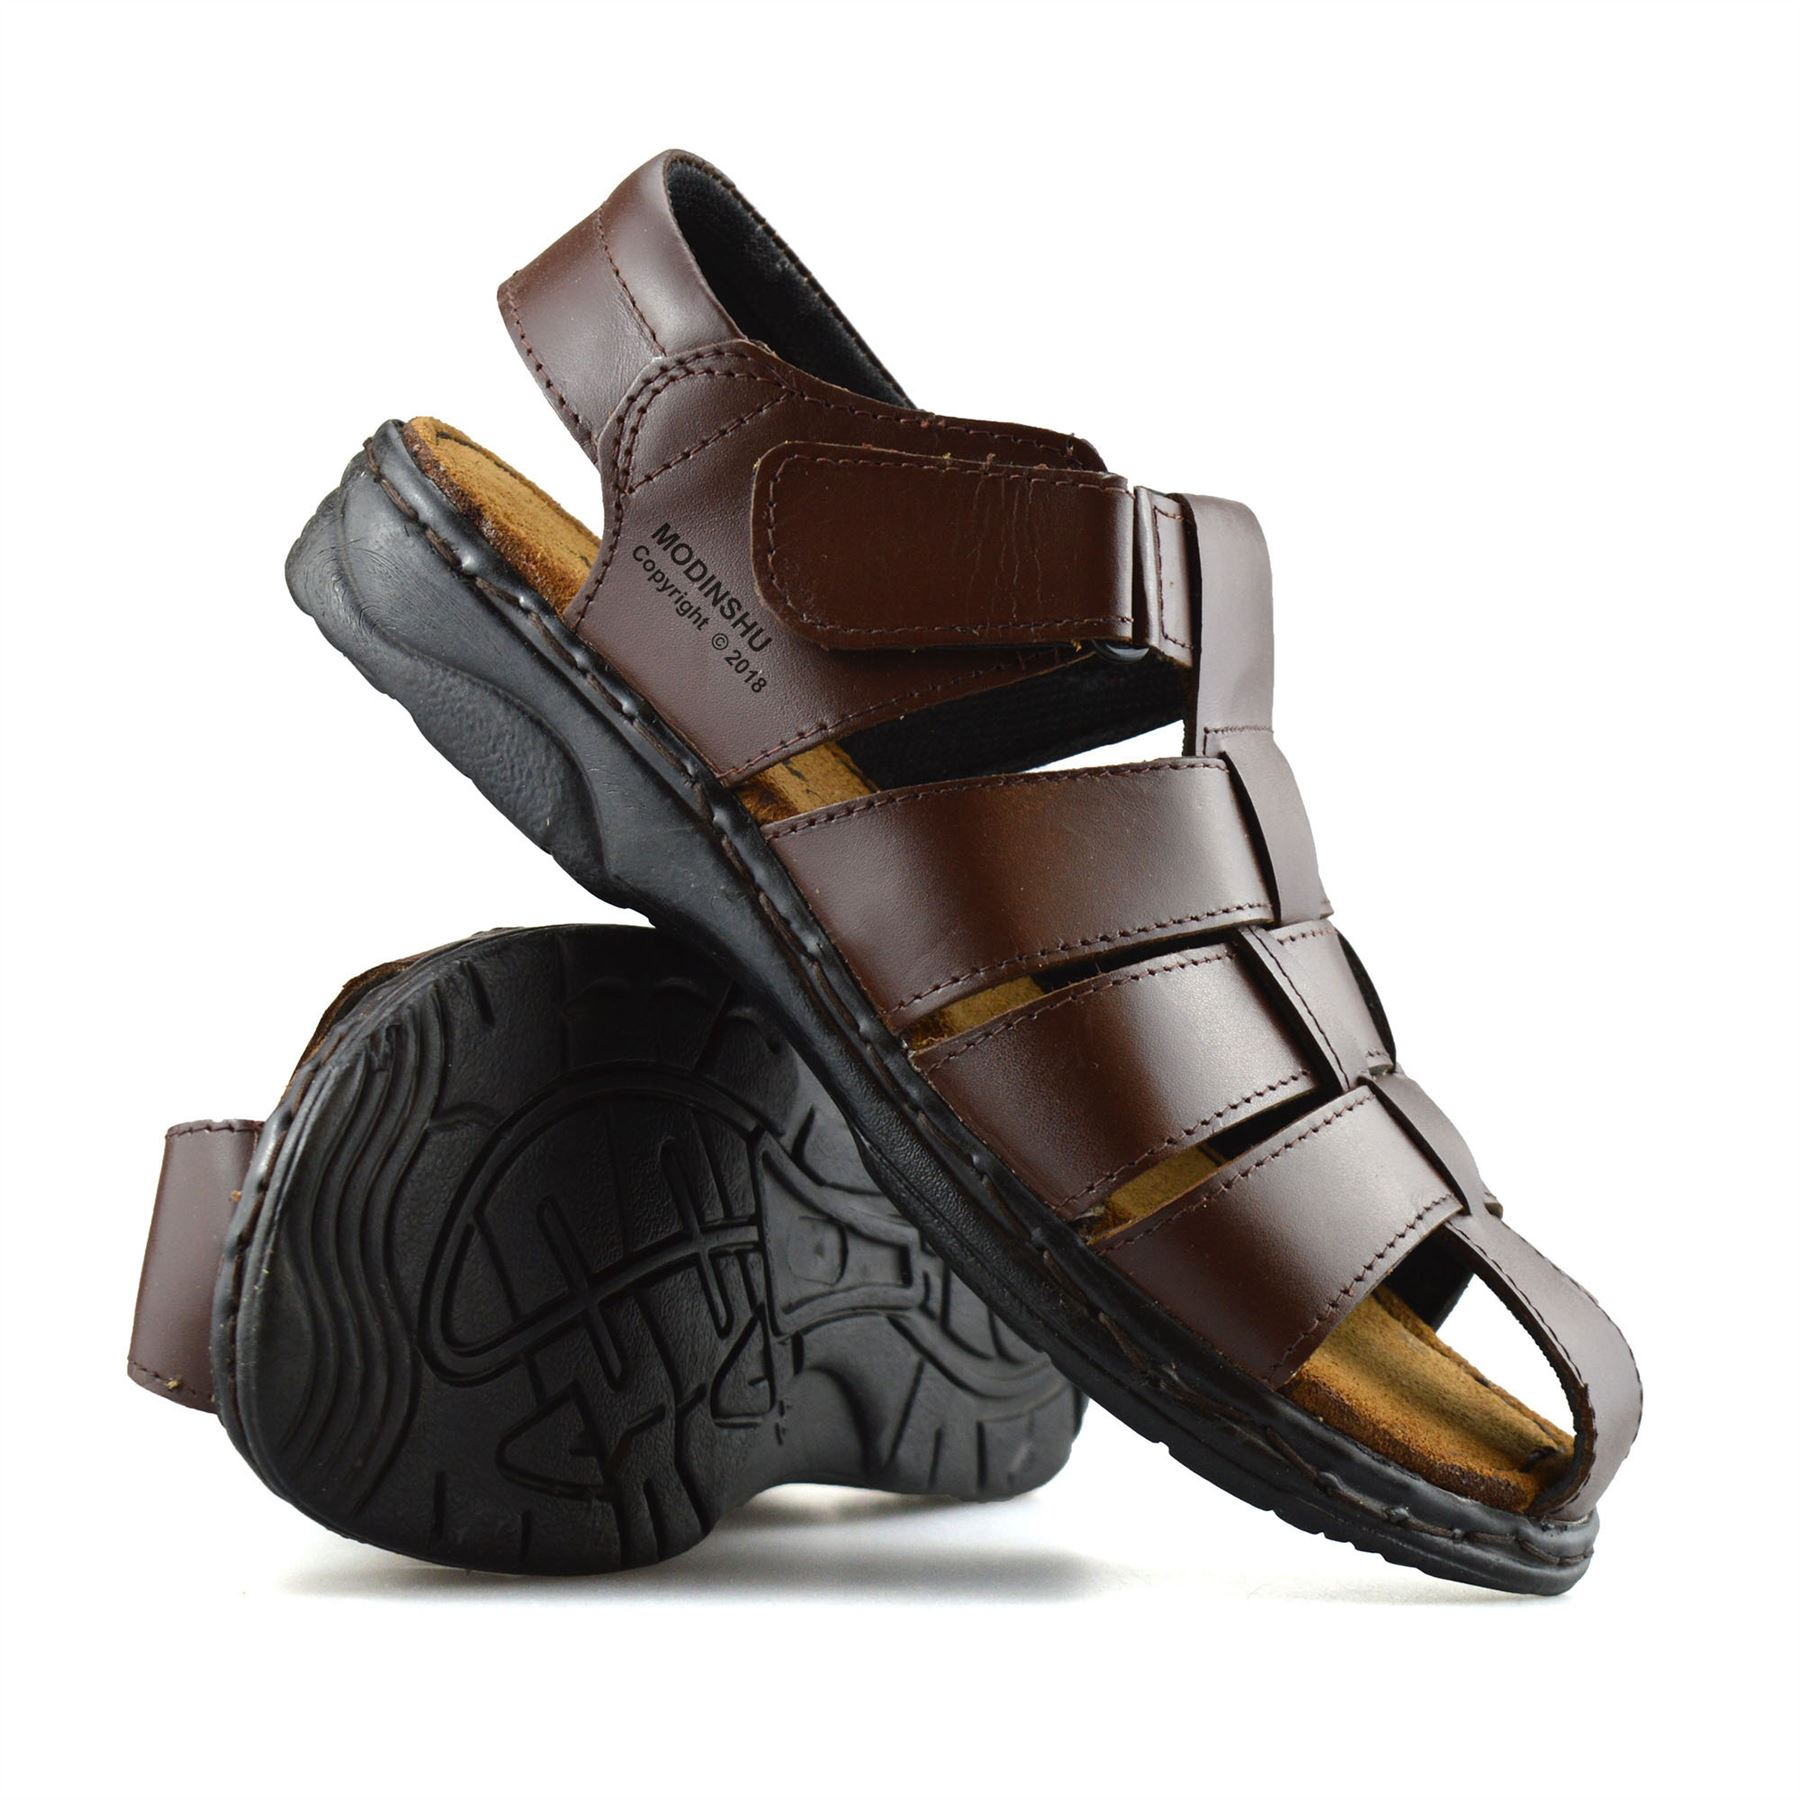 83f78e220688 Mens Leather Walking Touch Strap Summer Beach Mules Gladiator ...